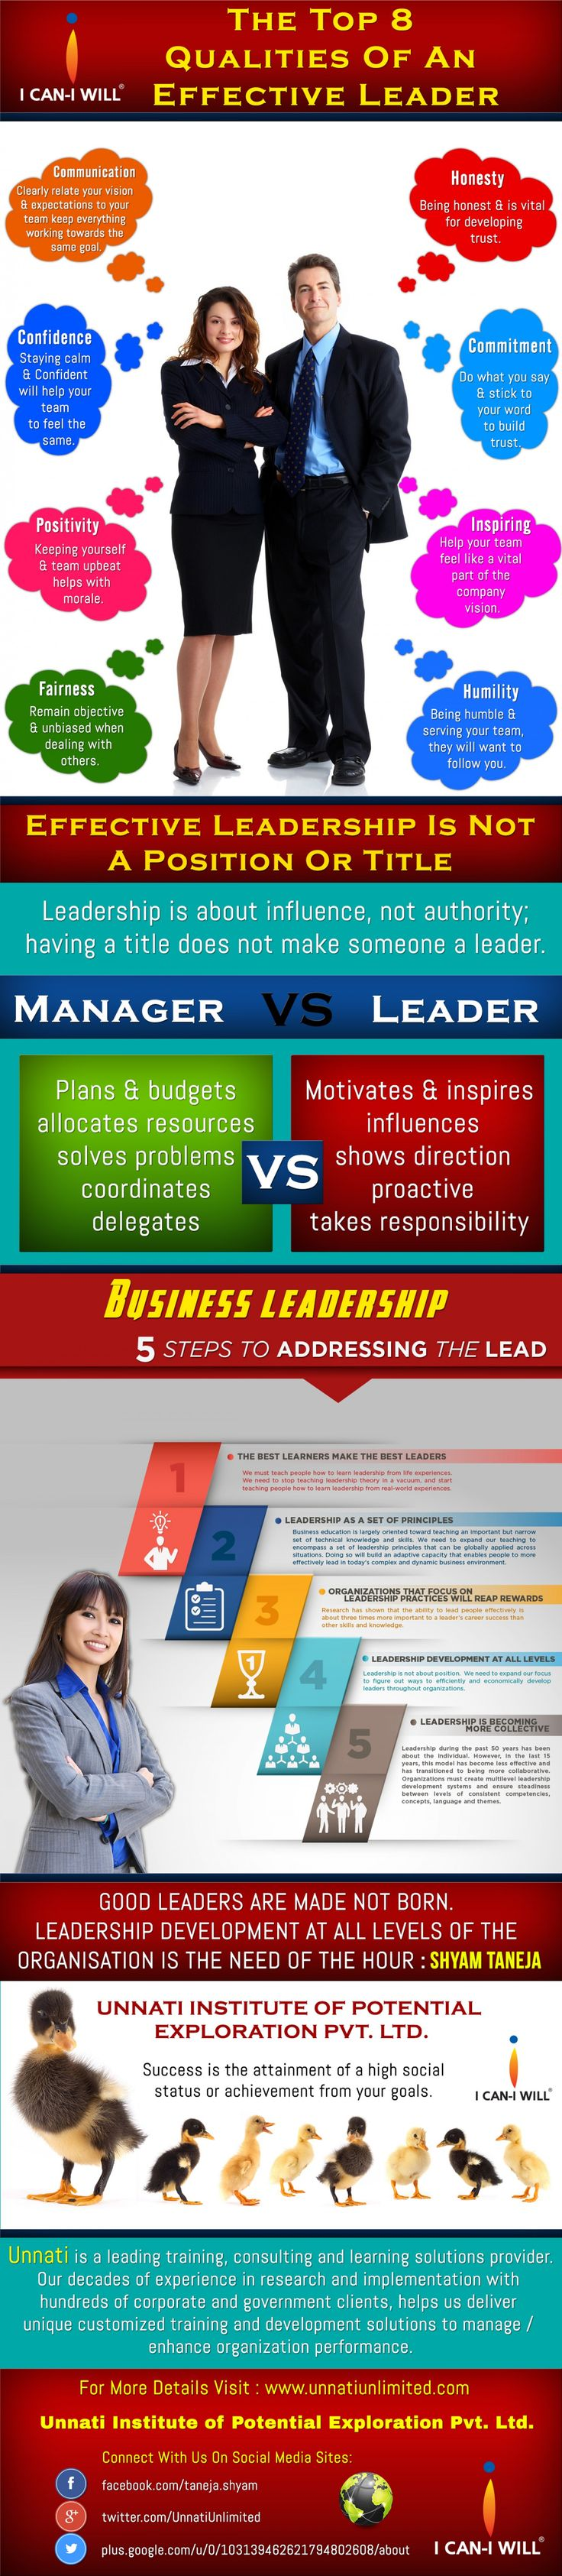 The Top 8 Qualities of an Effective #Leader cc @anlsm30 #H2H #coopetitividad